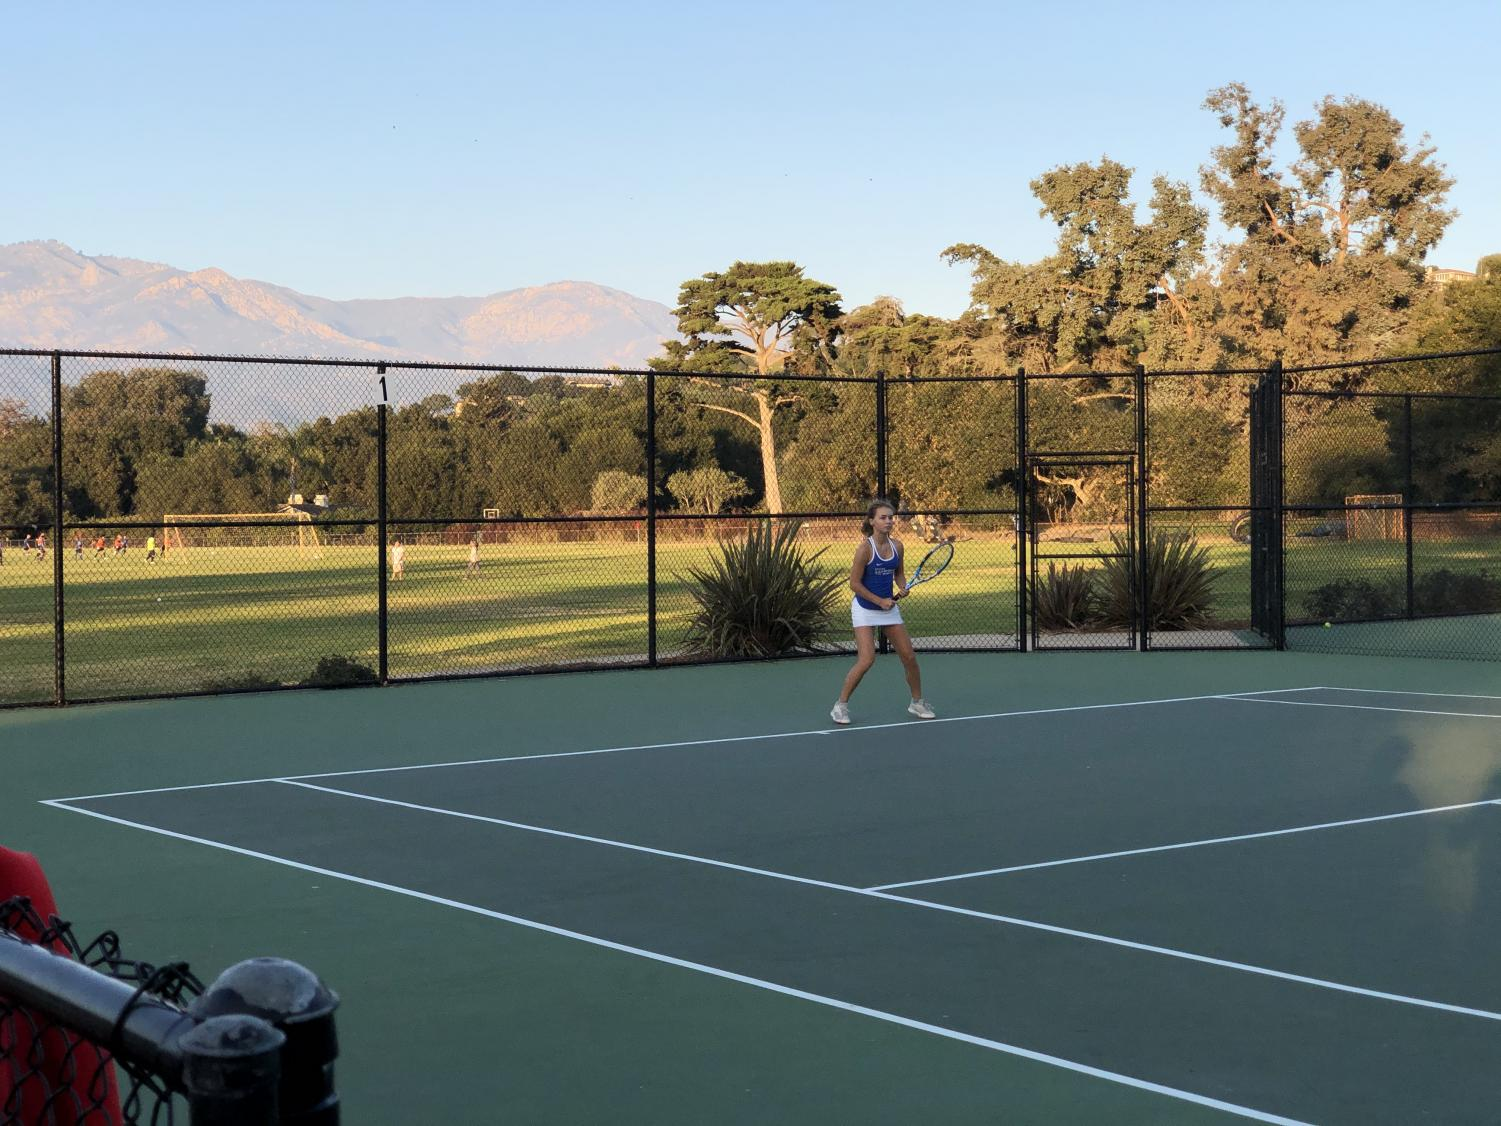 Mariia Lyktar ('22) prepares to hit a forehand down-the-line shot from the baseline.